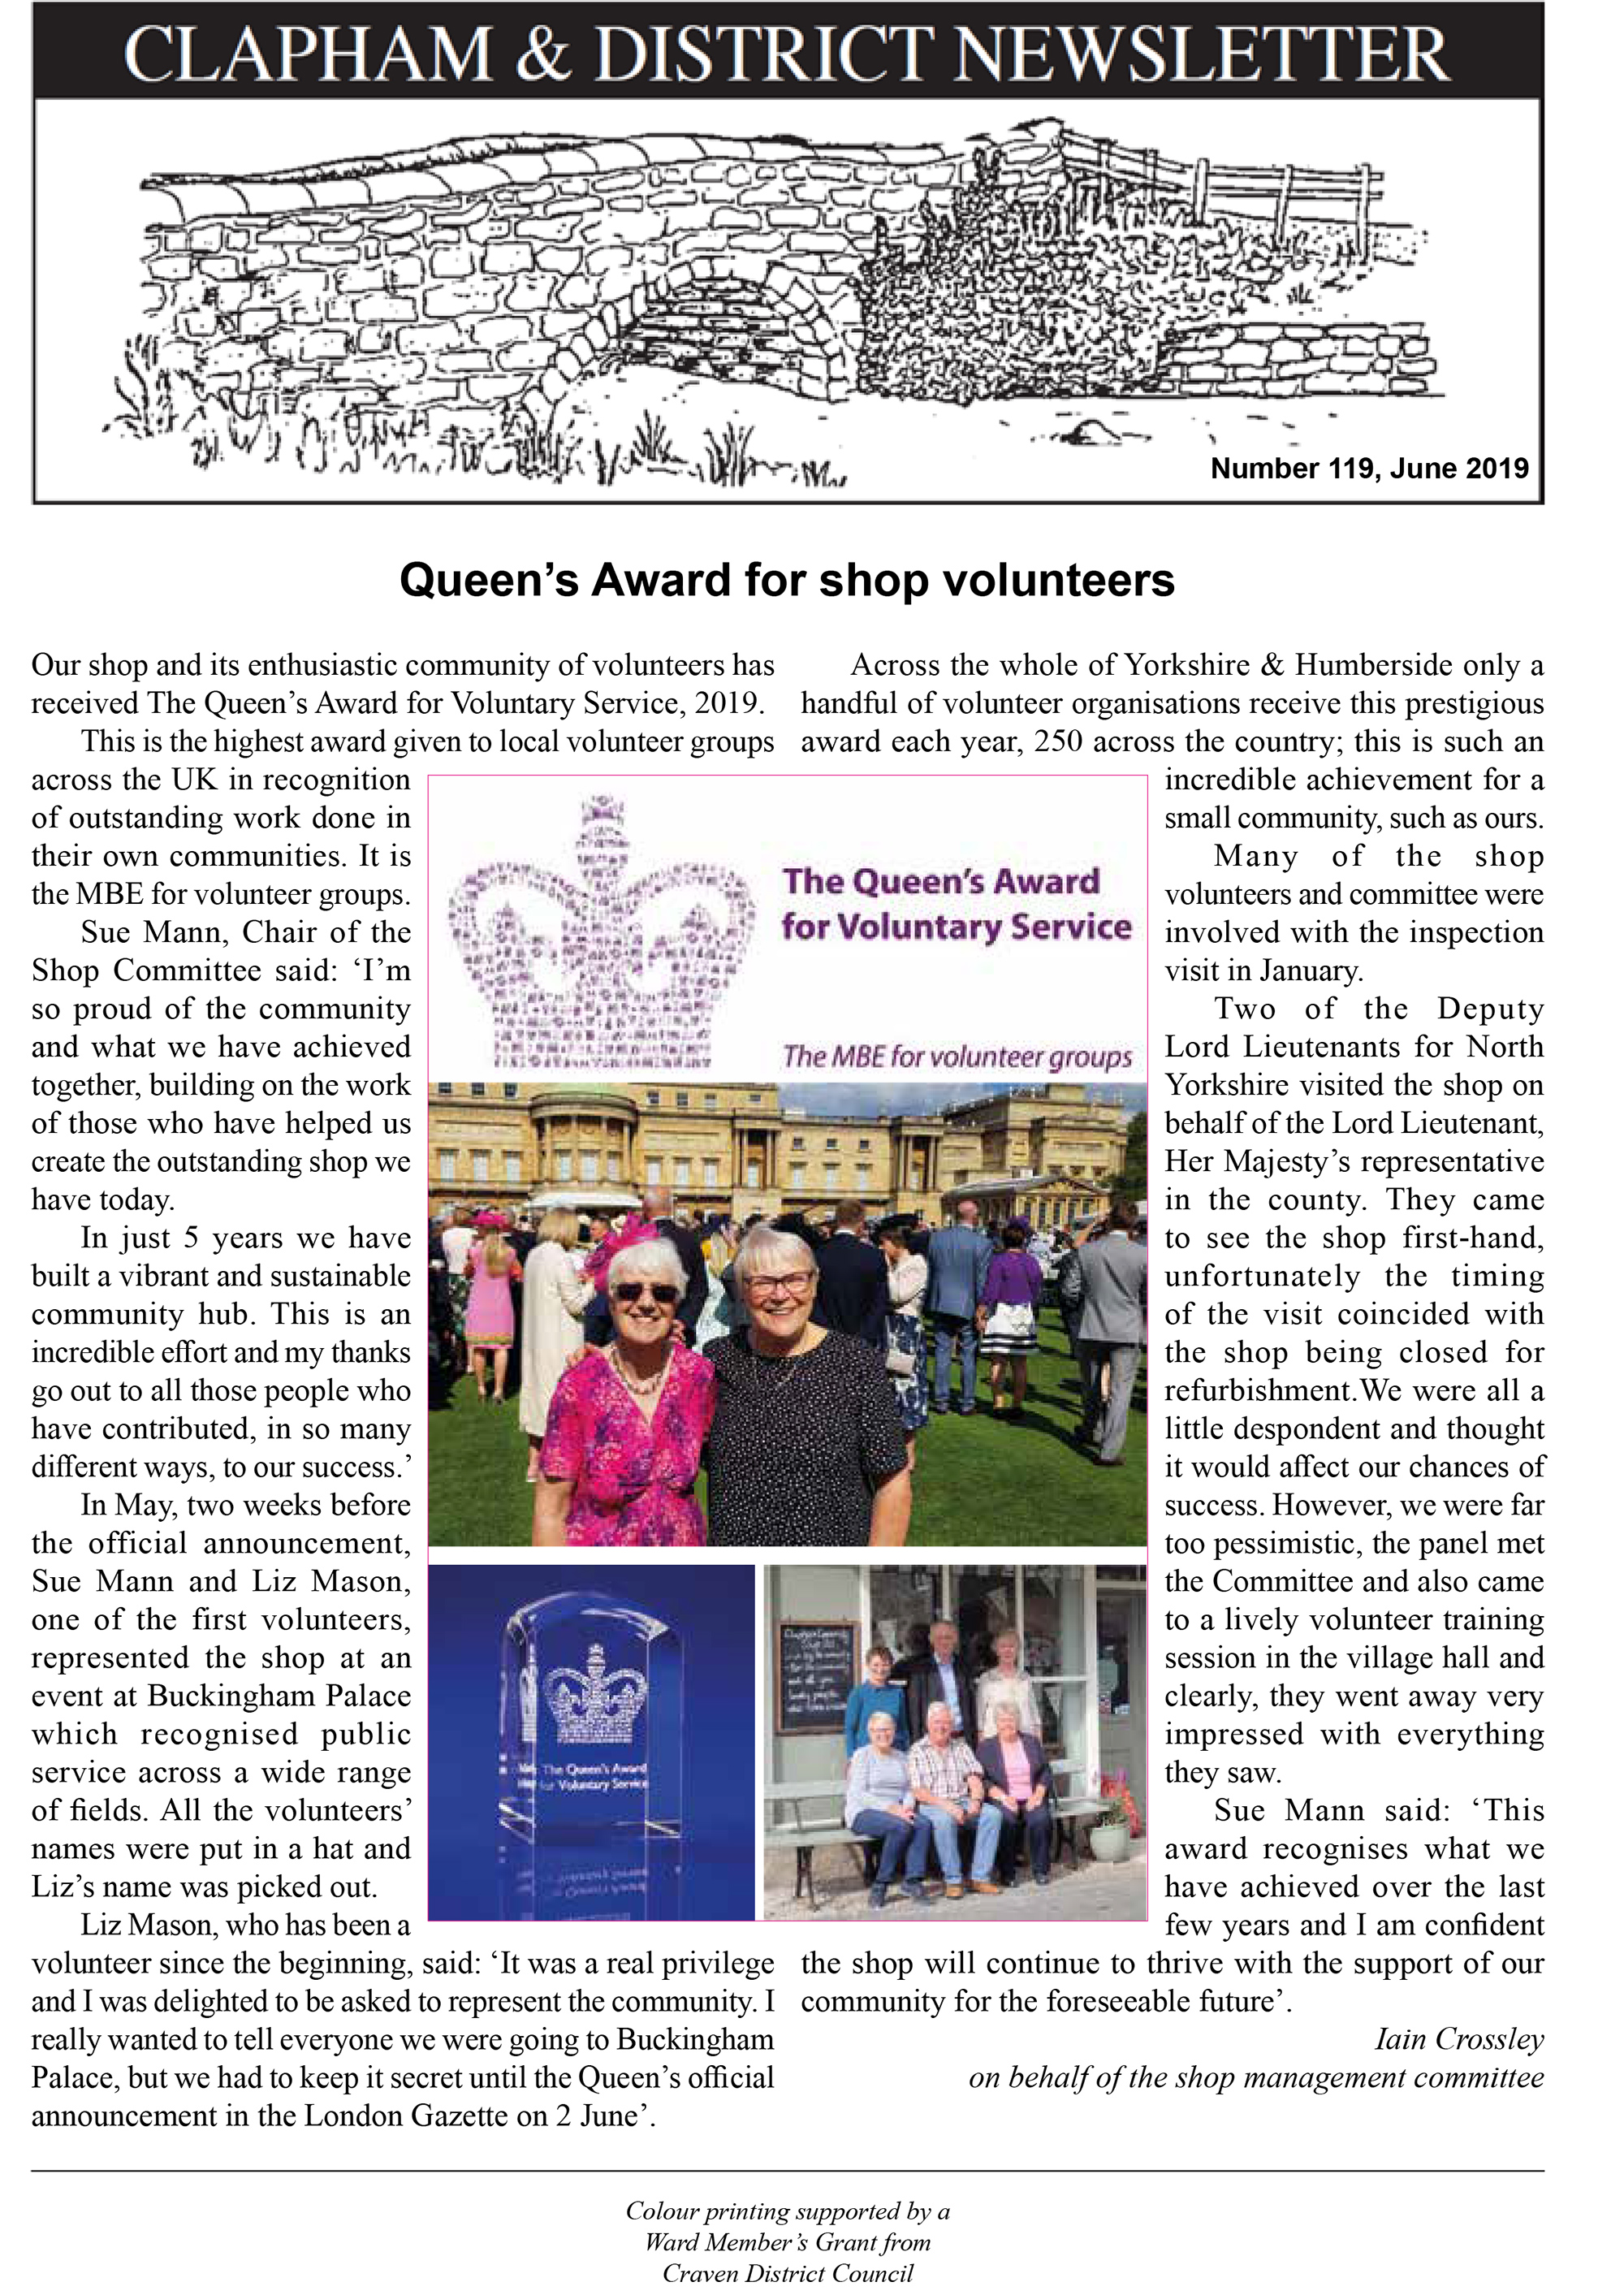 clapham-newsletter-119-may-2019-1